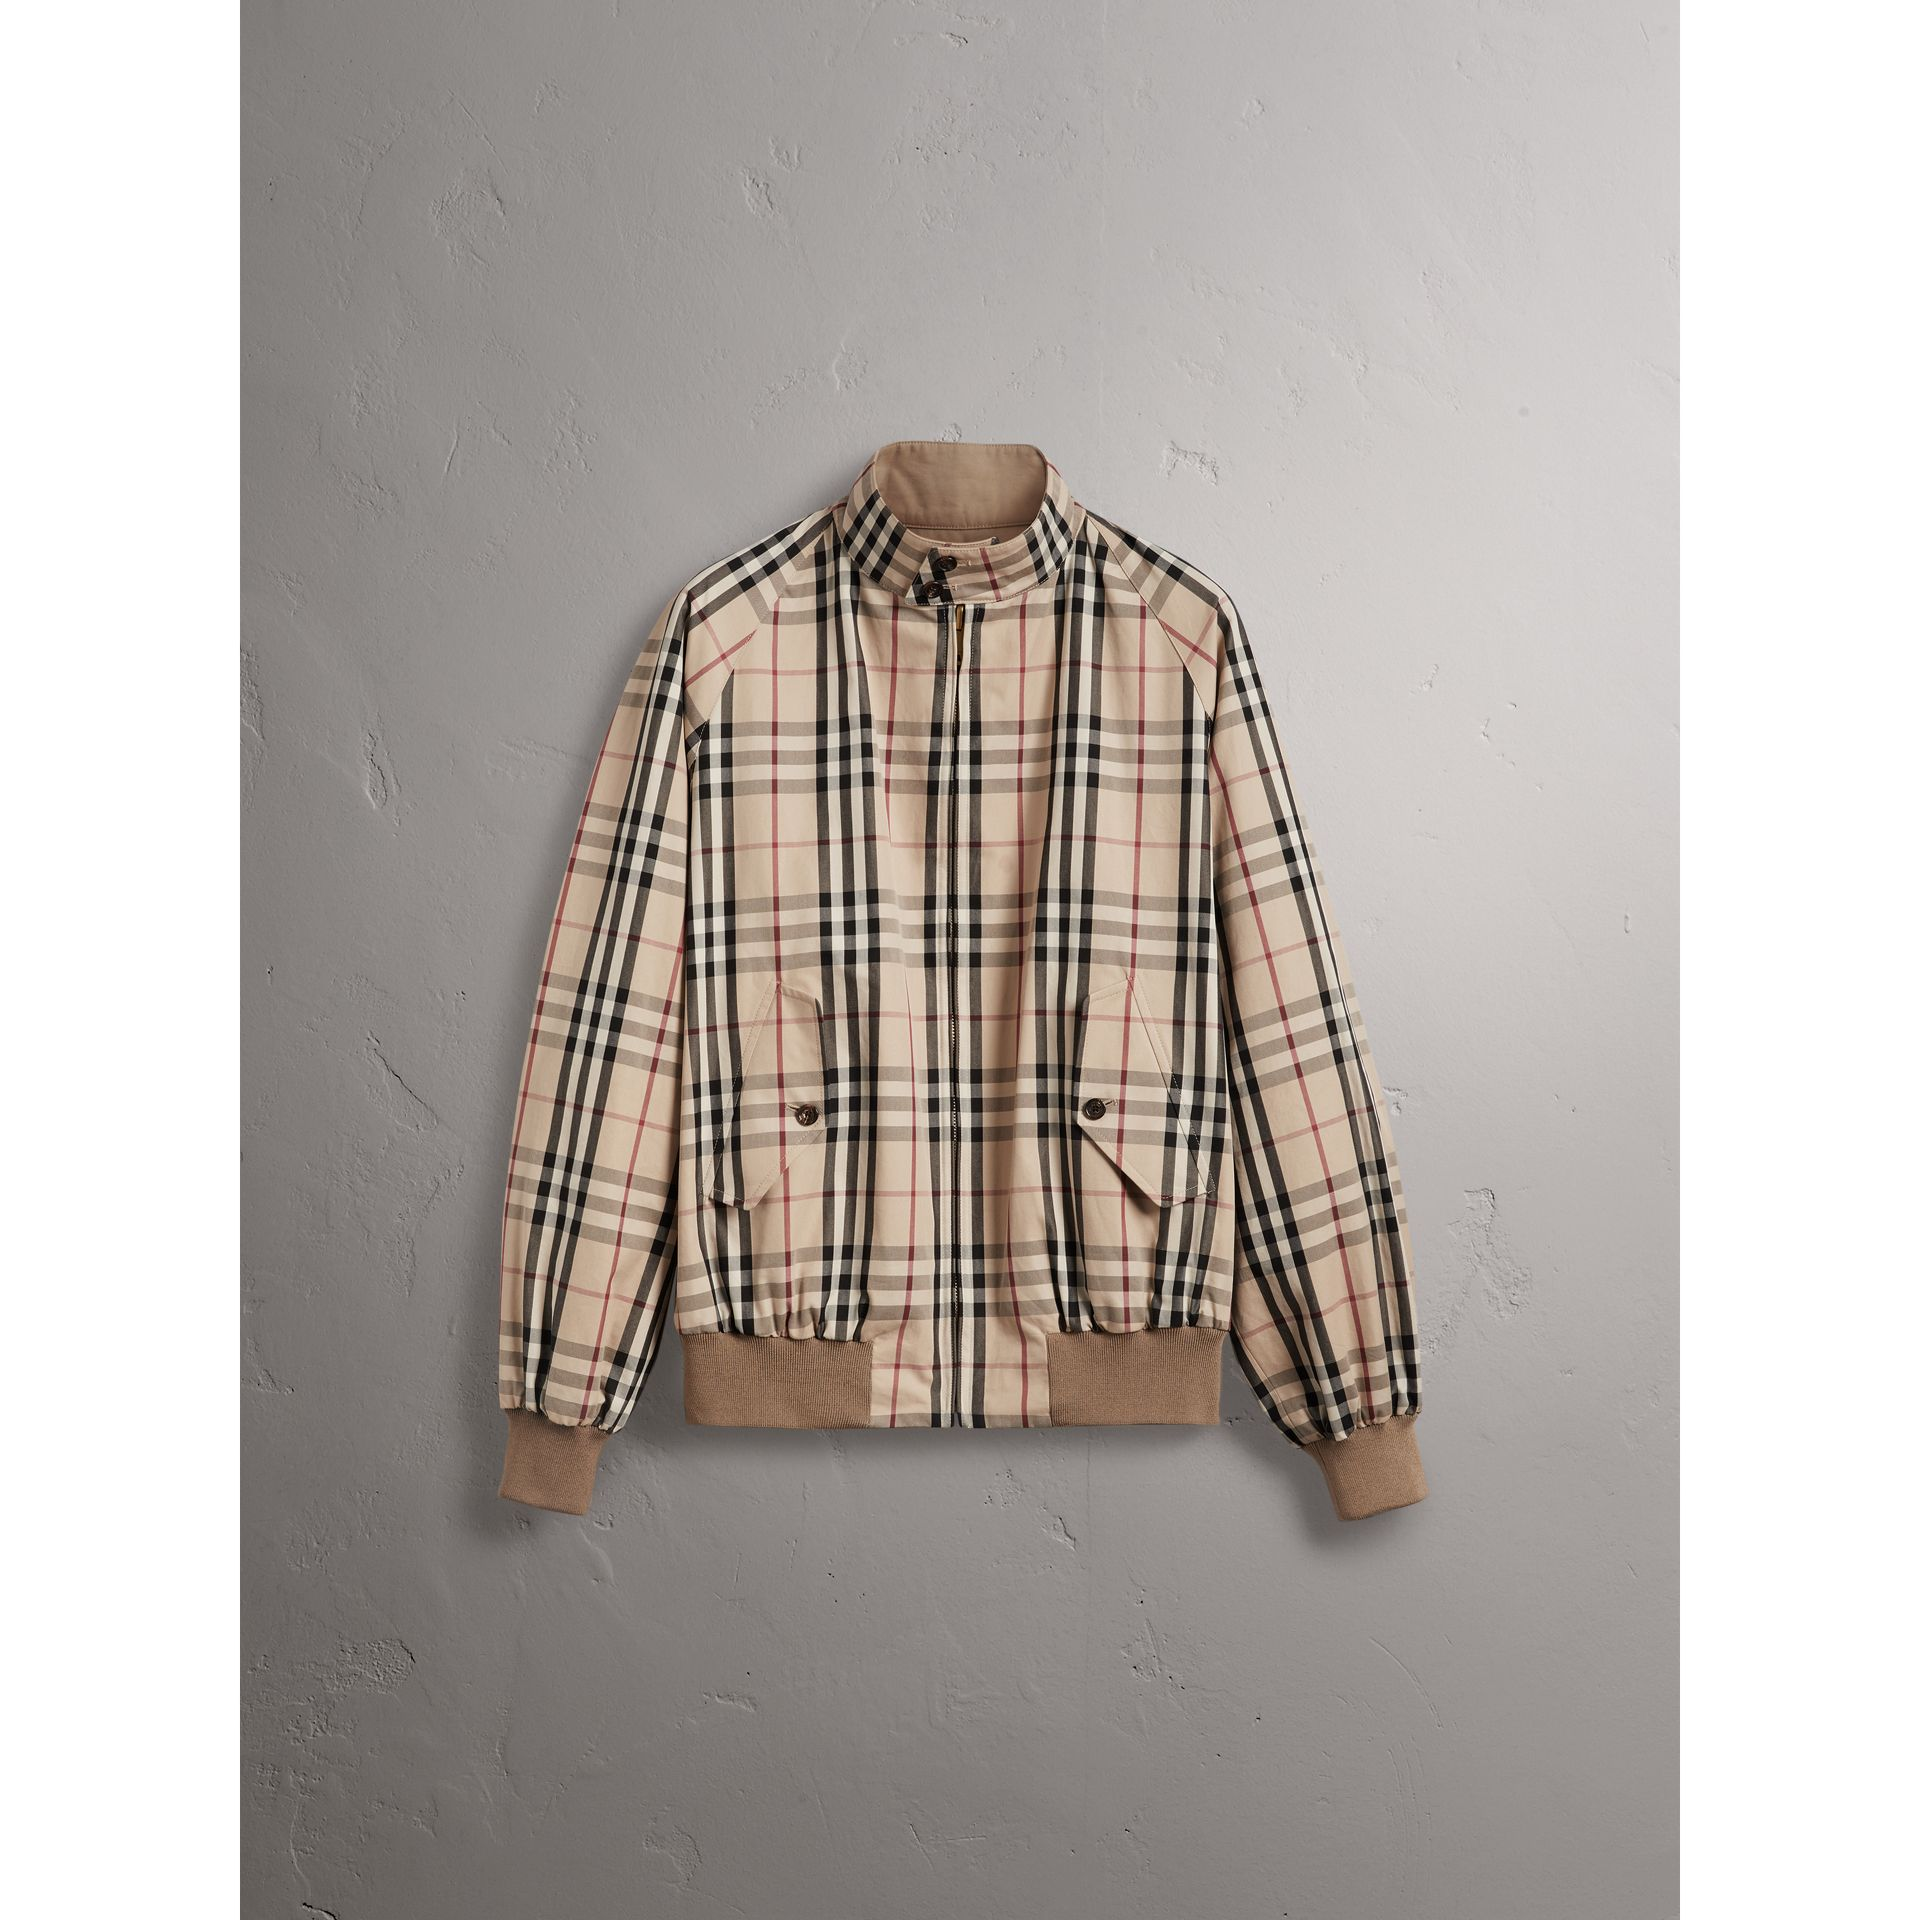 Gosha x Burberry Reversible Harrington Jacket in Honey | Burberry Singapore - gallery image 8